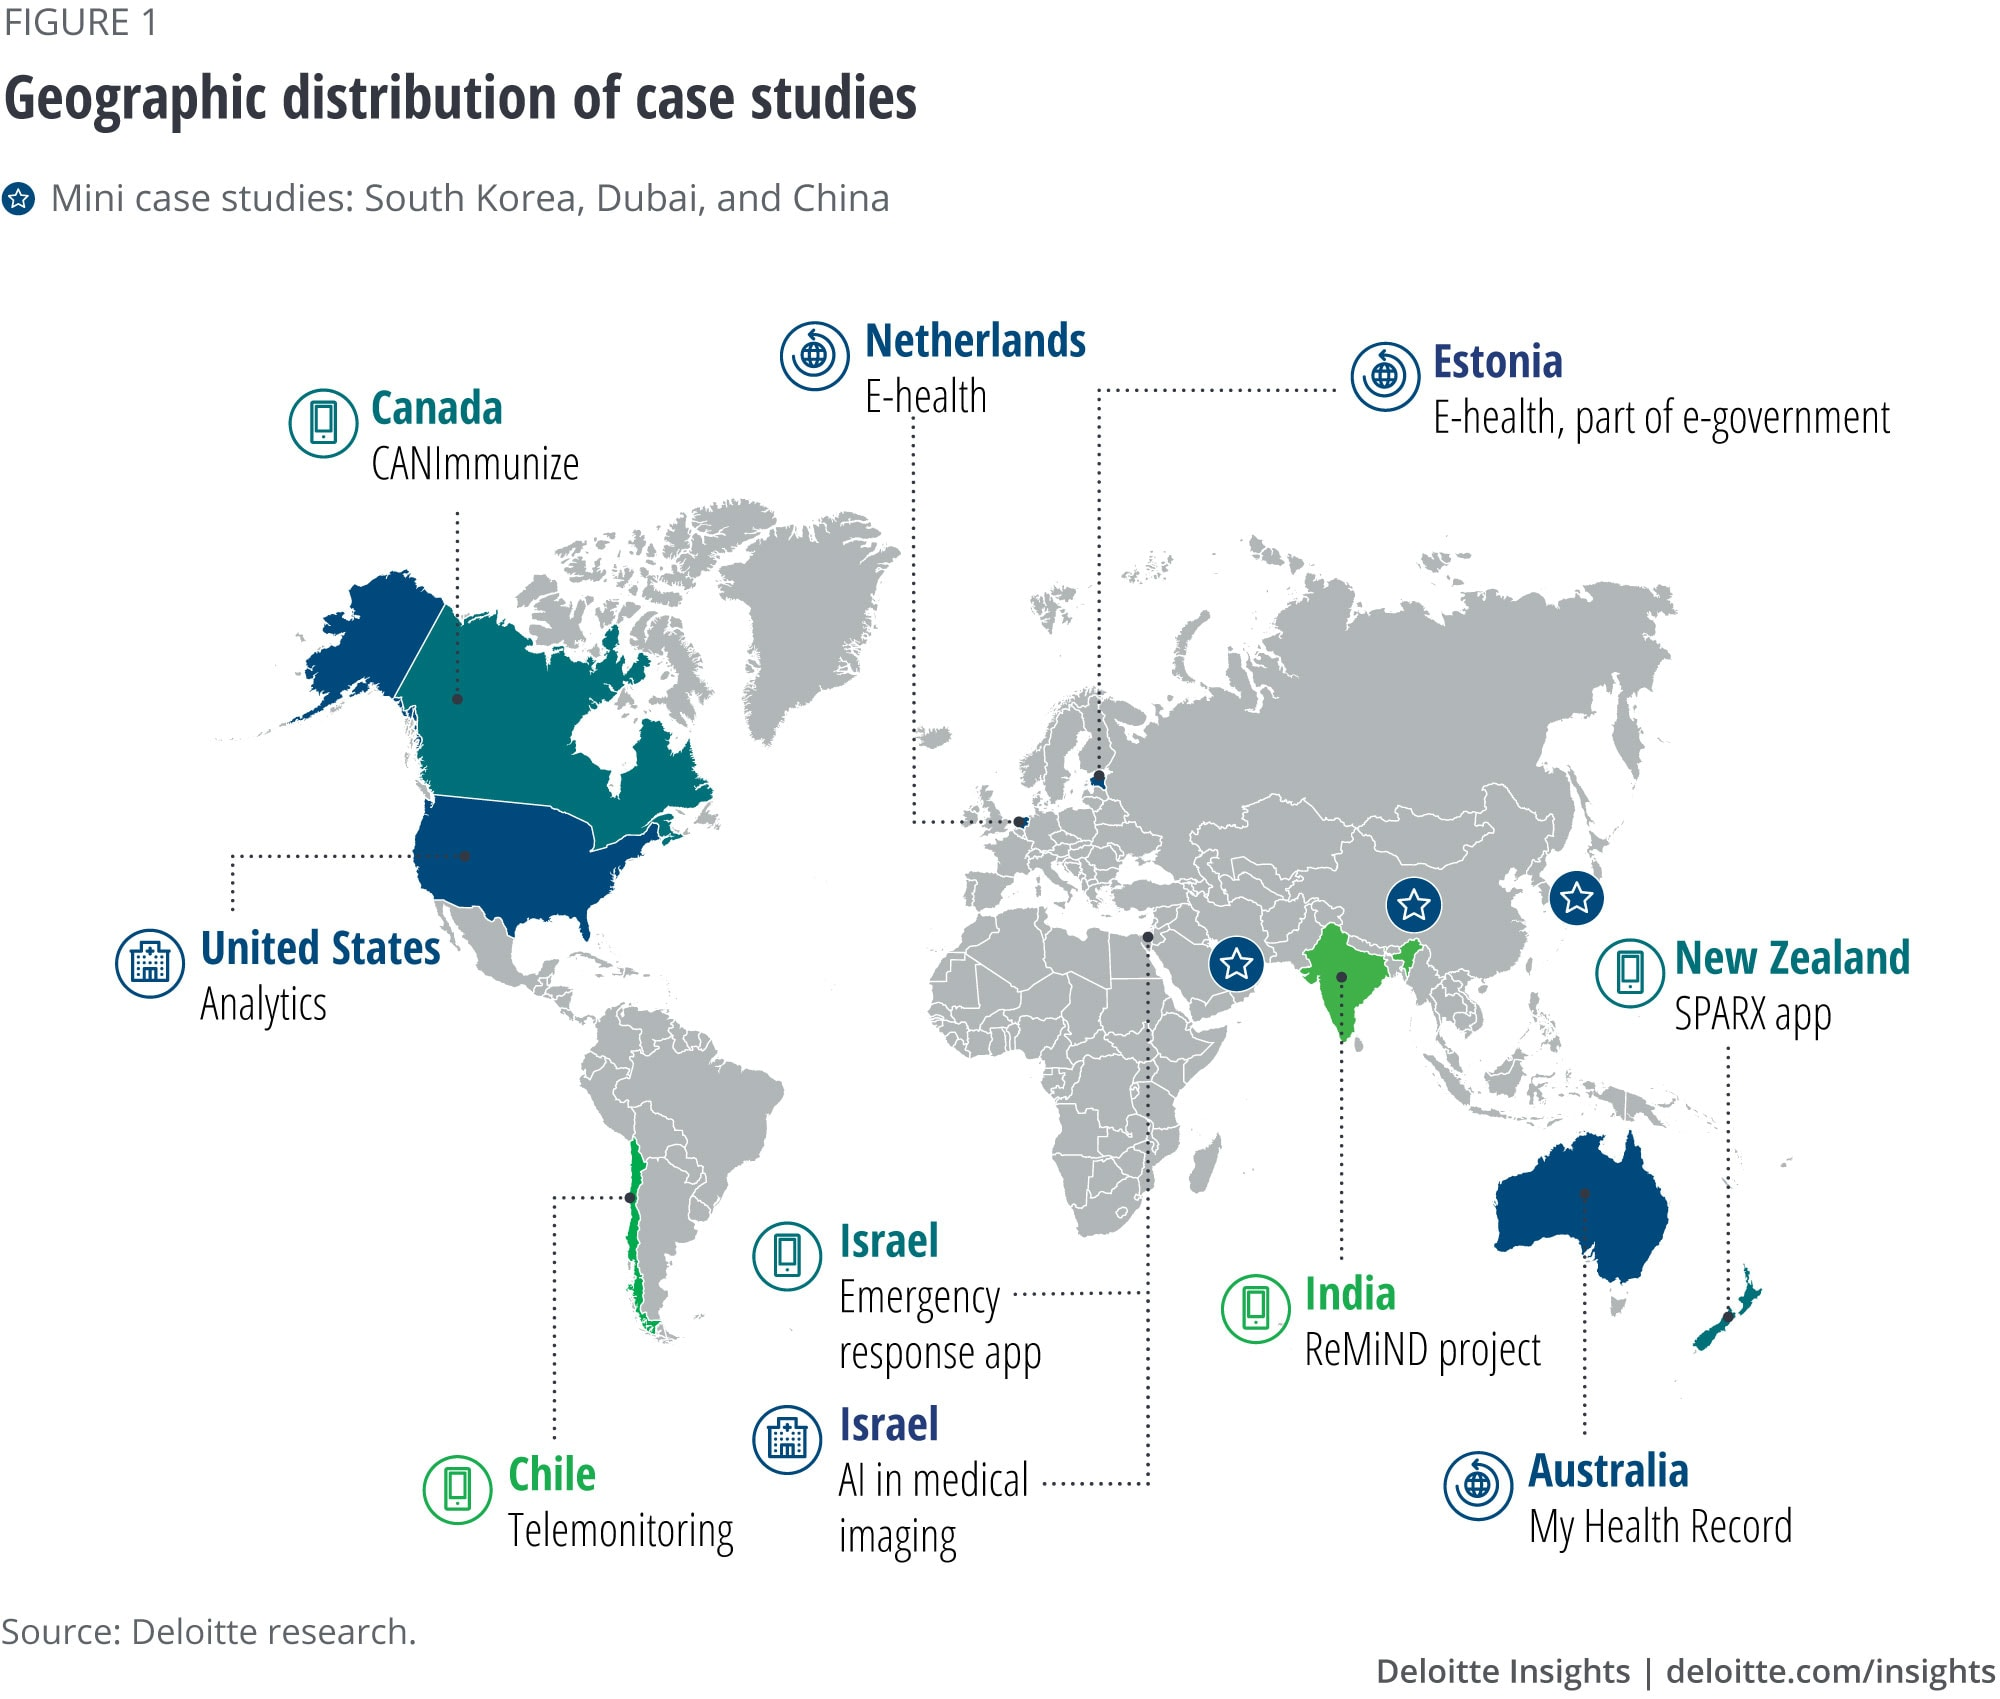 Geographic distribution of case studies